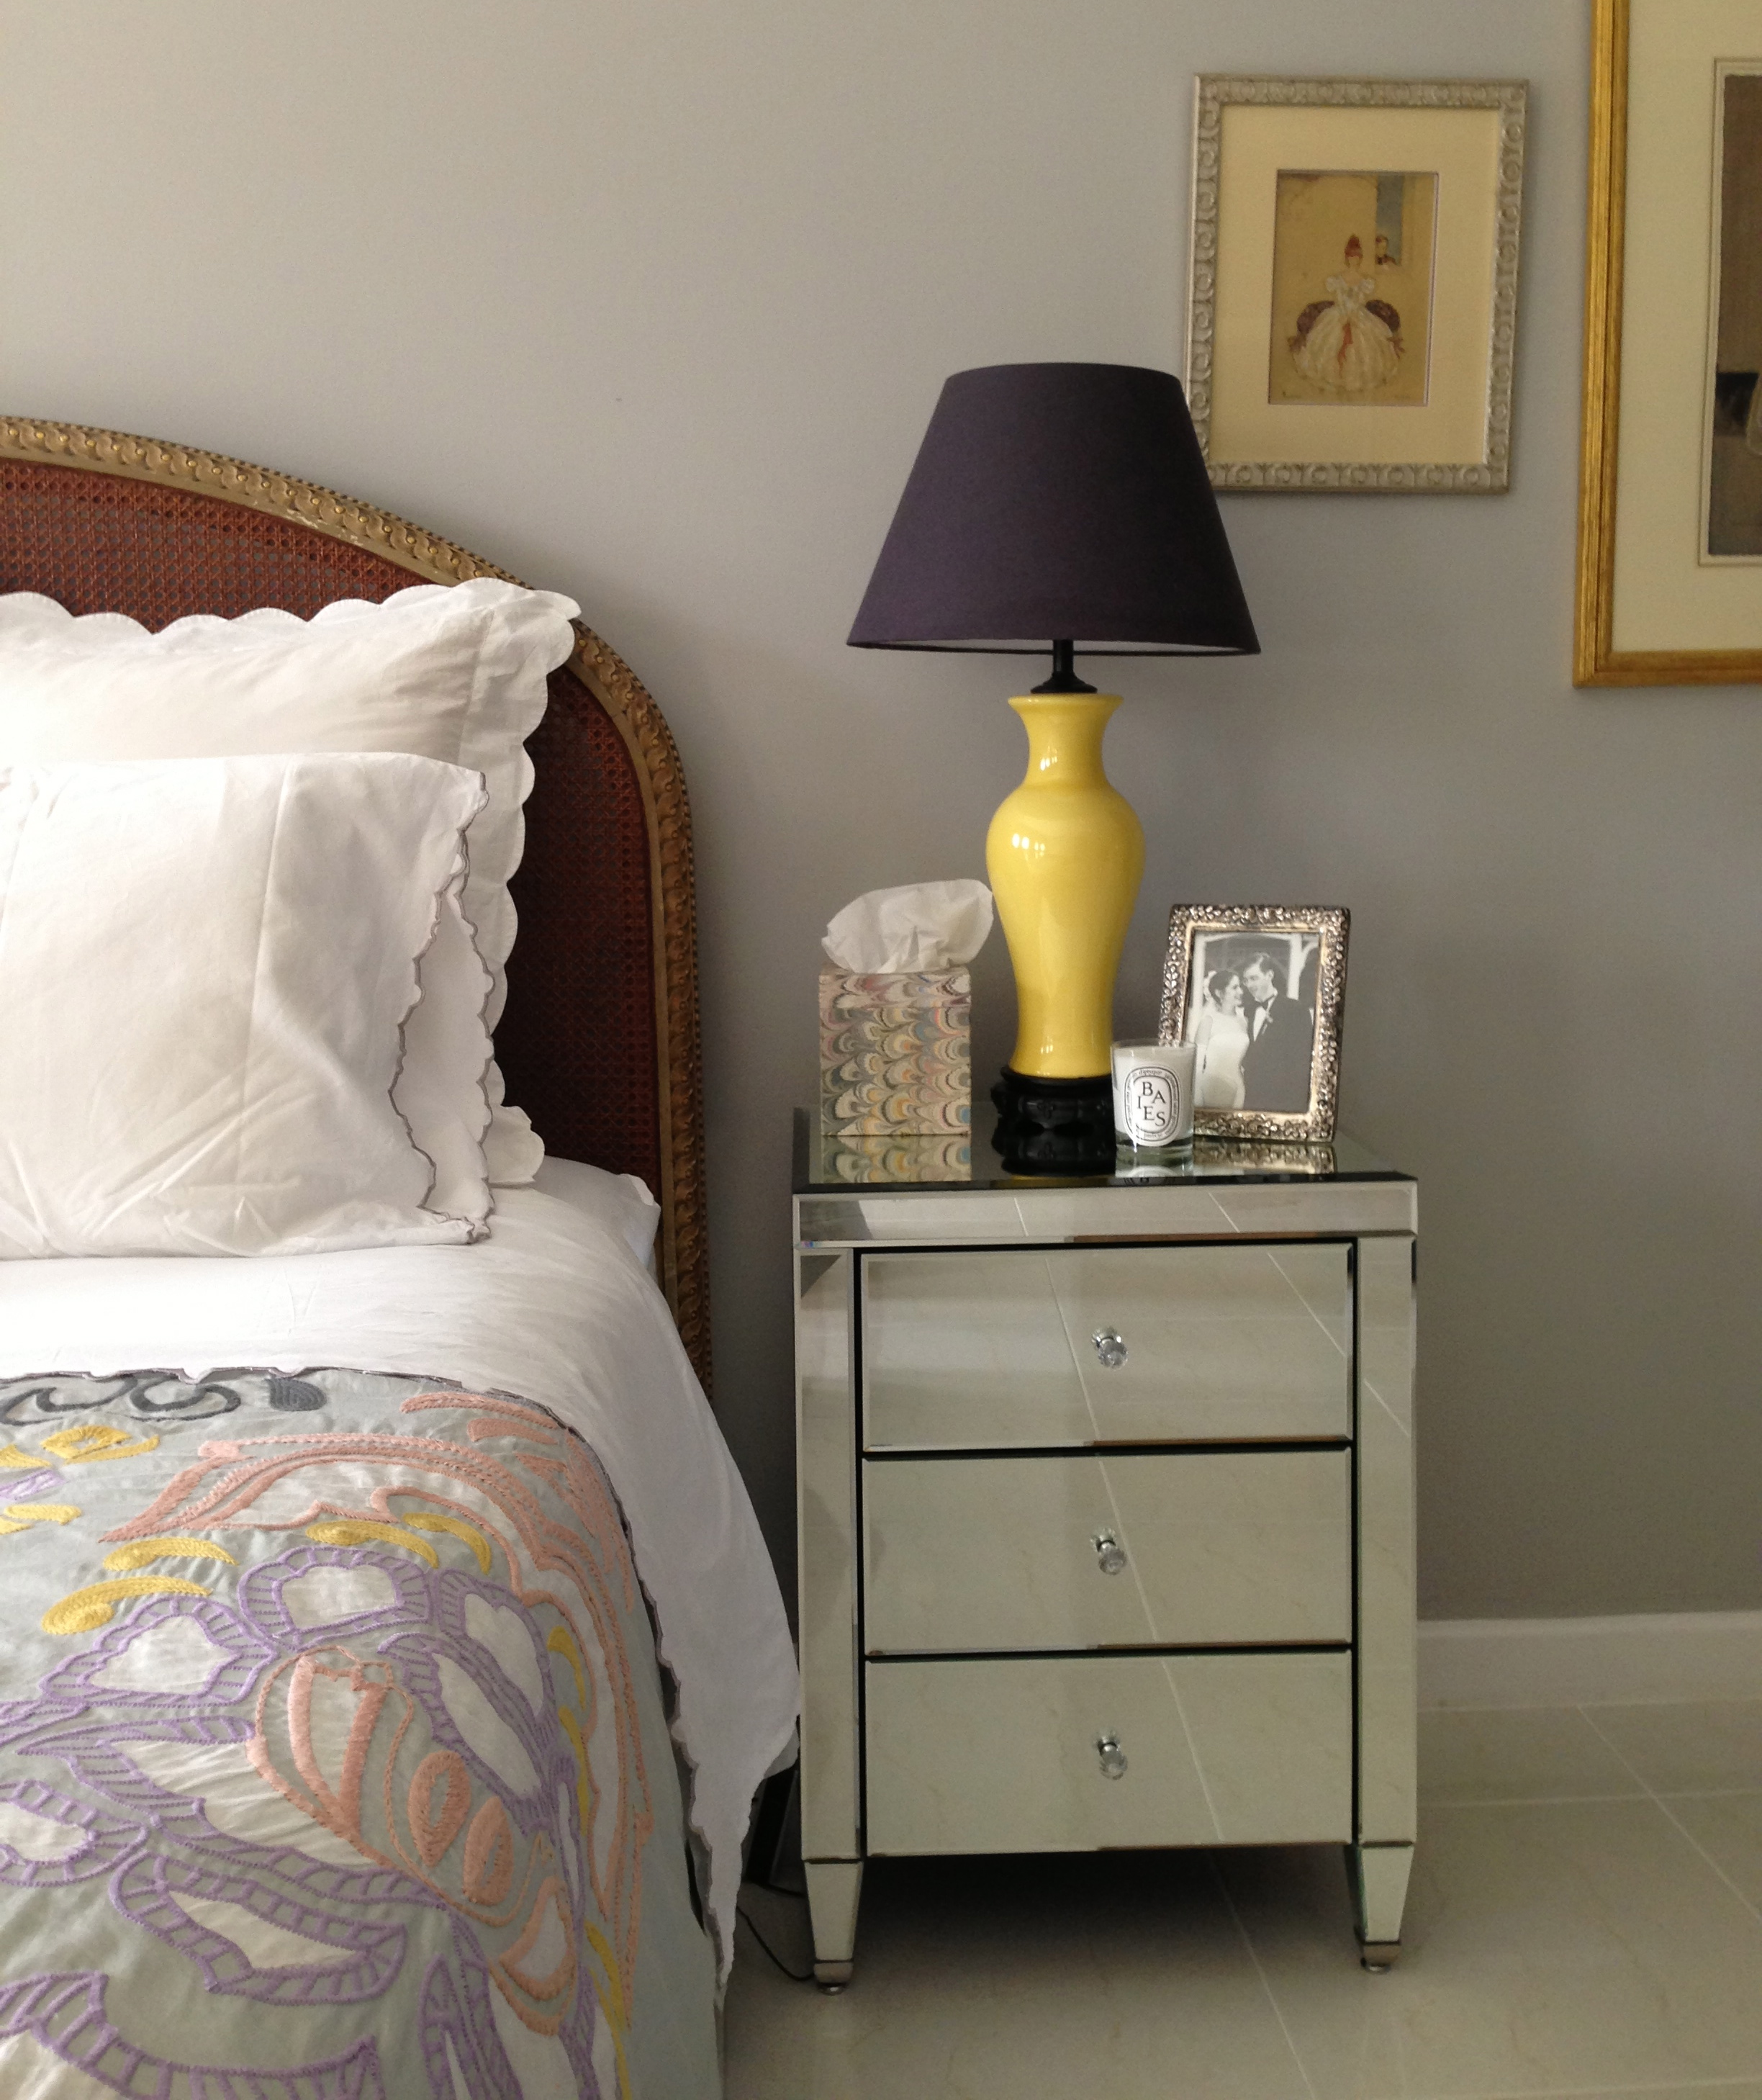 Doha Master Bedroom Uodated Yellow Imperial Vase Lamp Mirror Night Stand